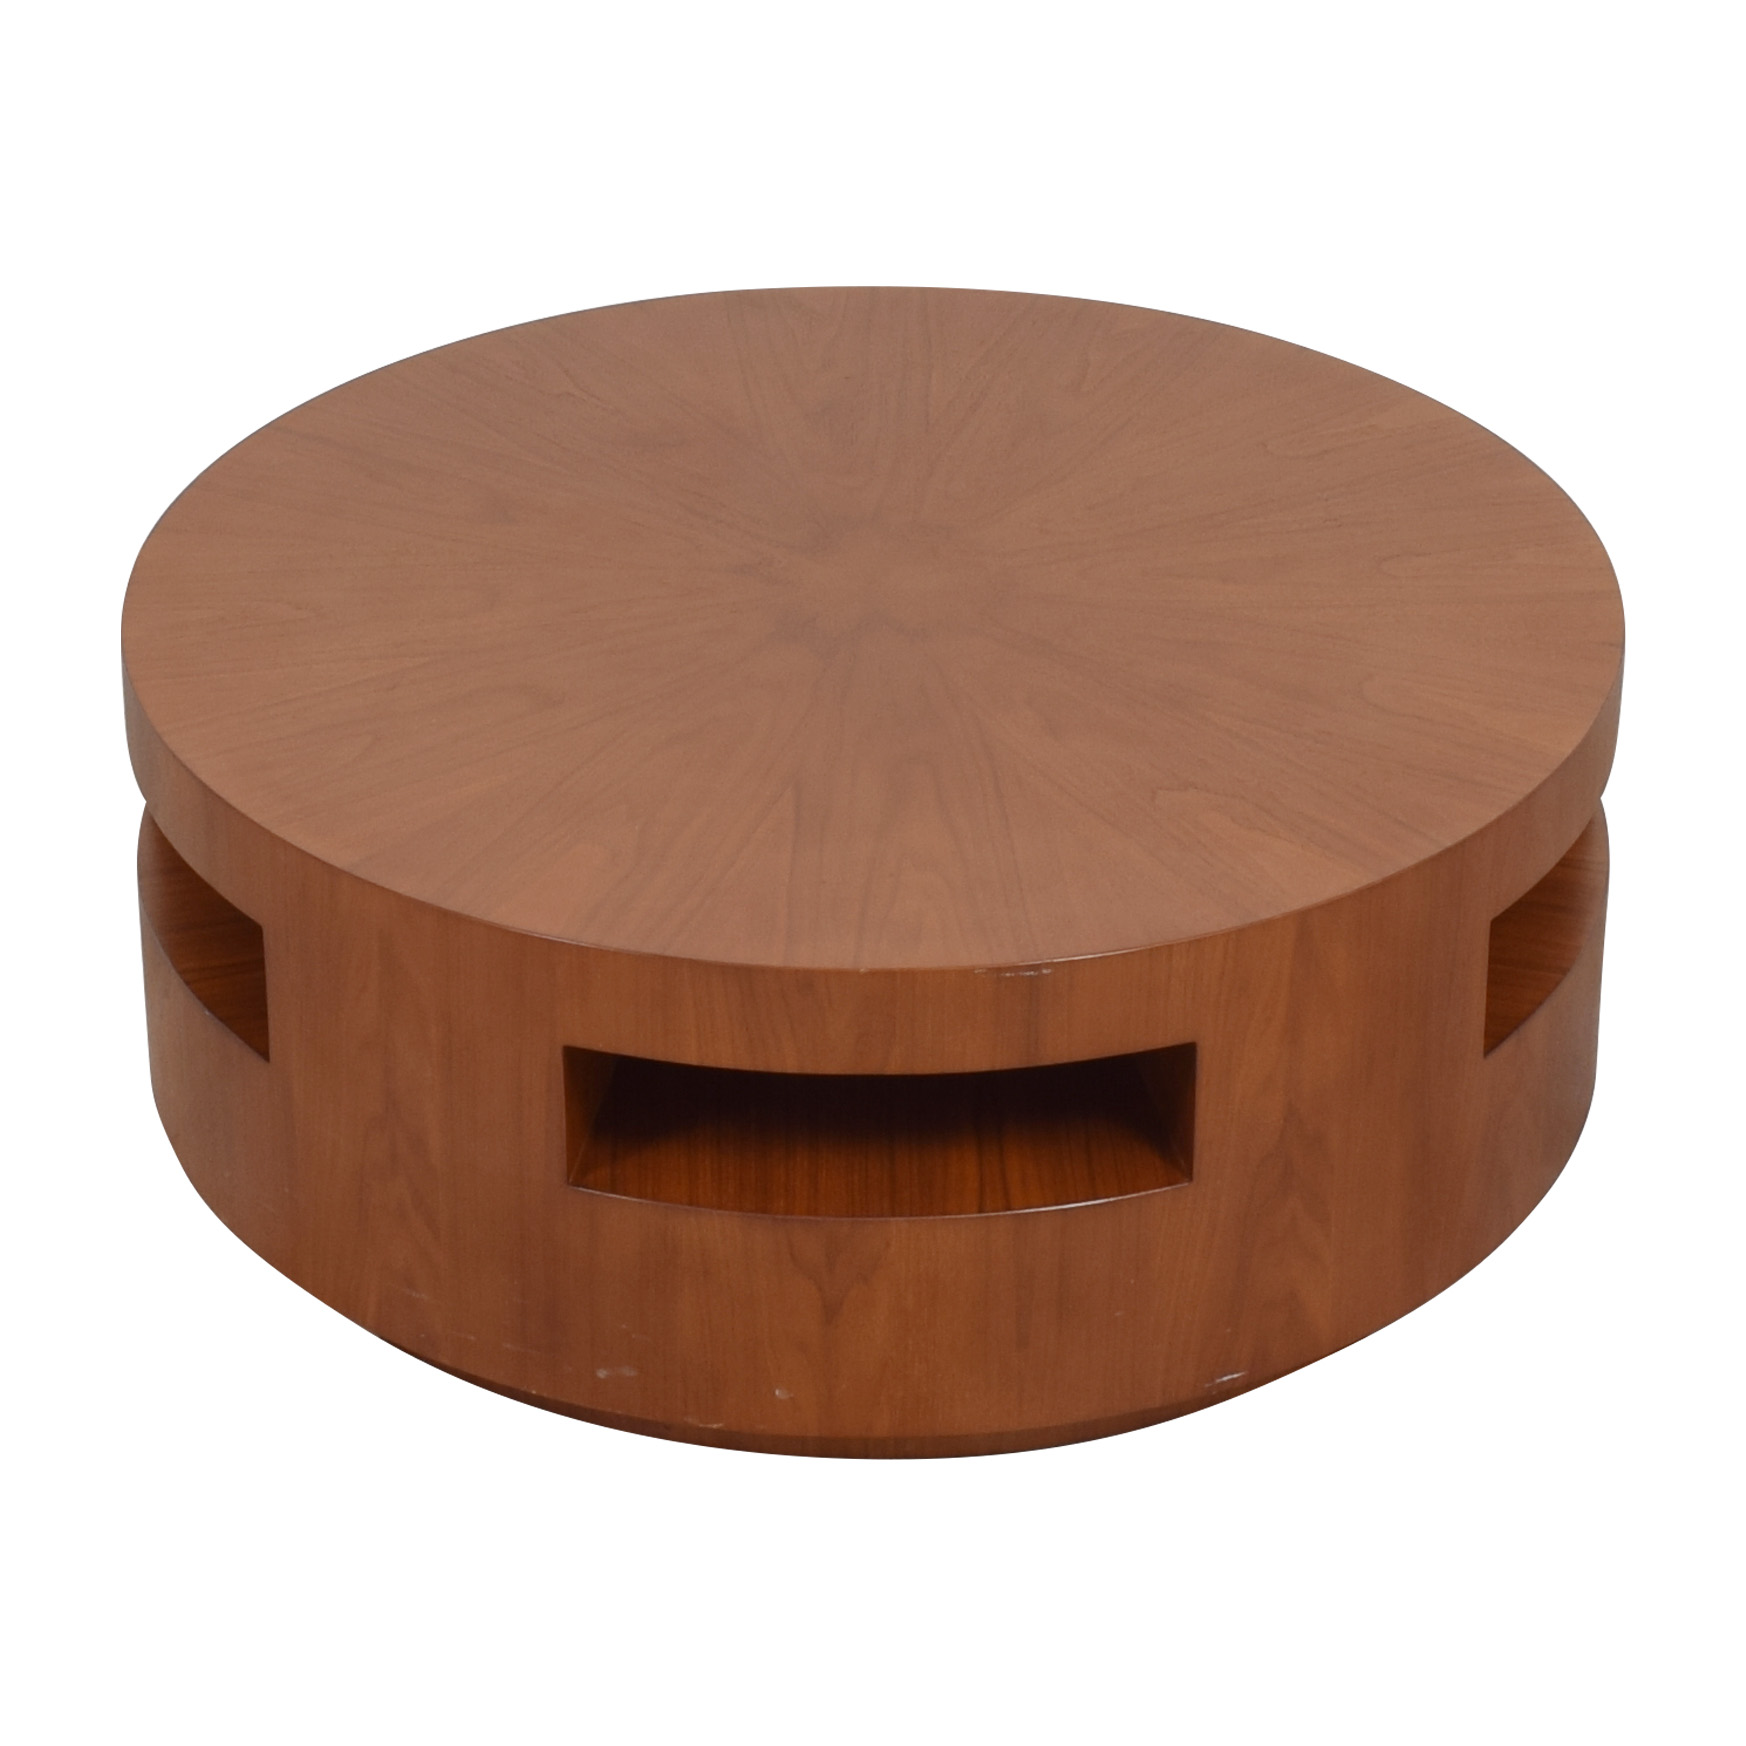 buy Crate & Barrel Tambe Coffee Table Crate & Barrel